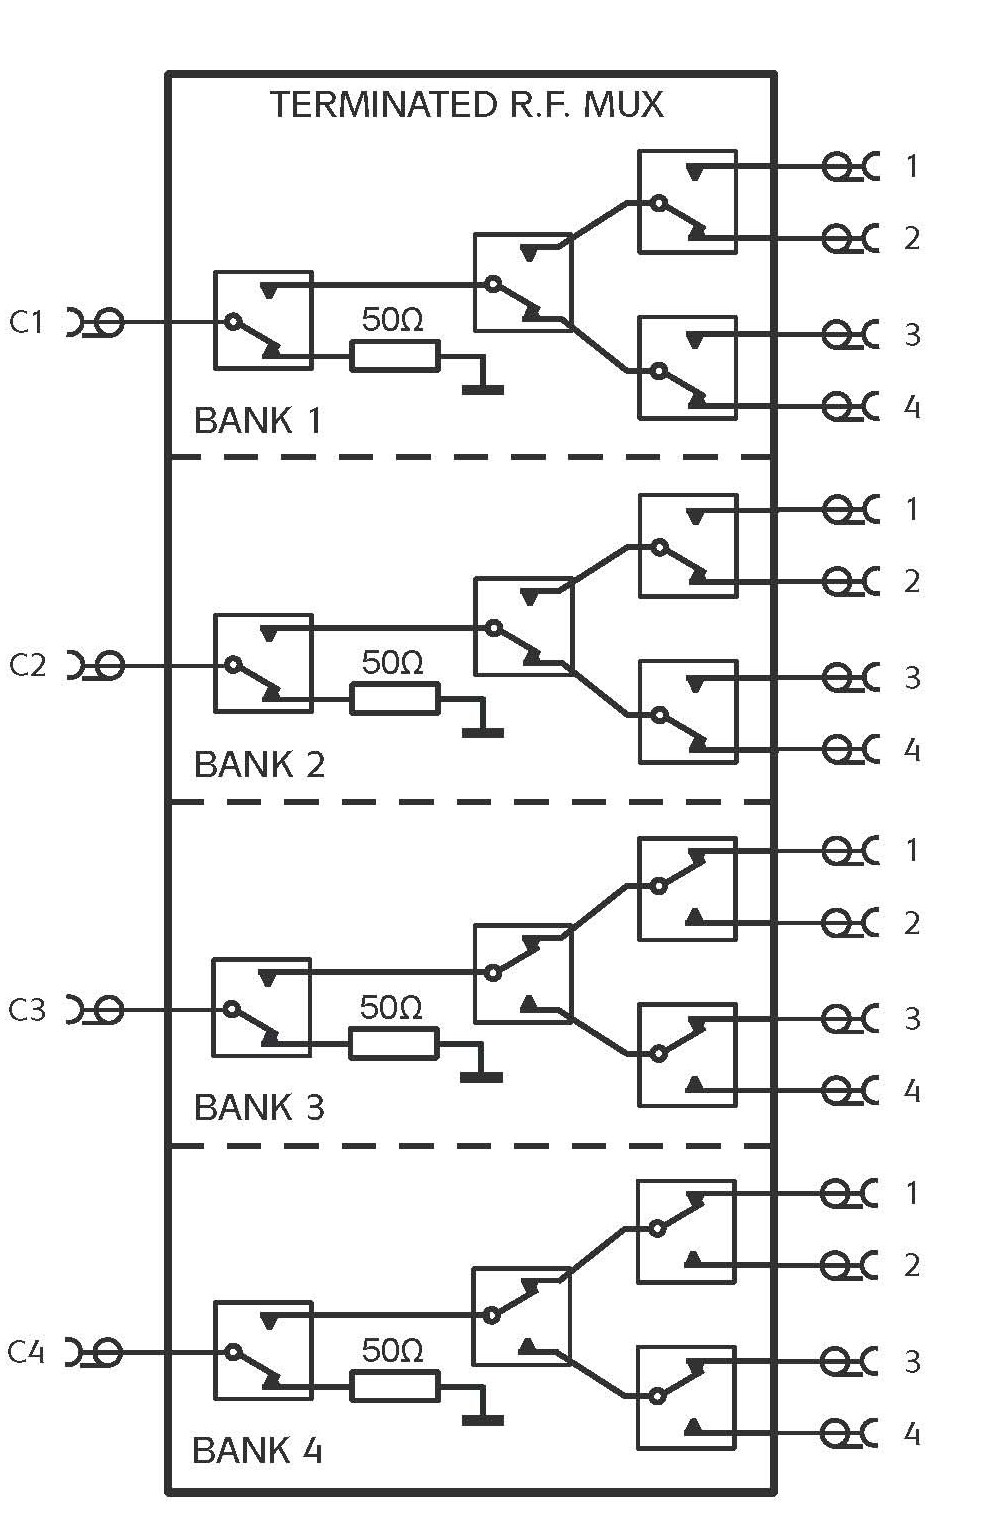 Diagram of 40-846 RF Mux, showing the banks